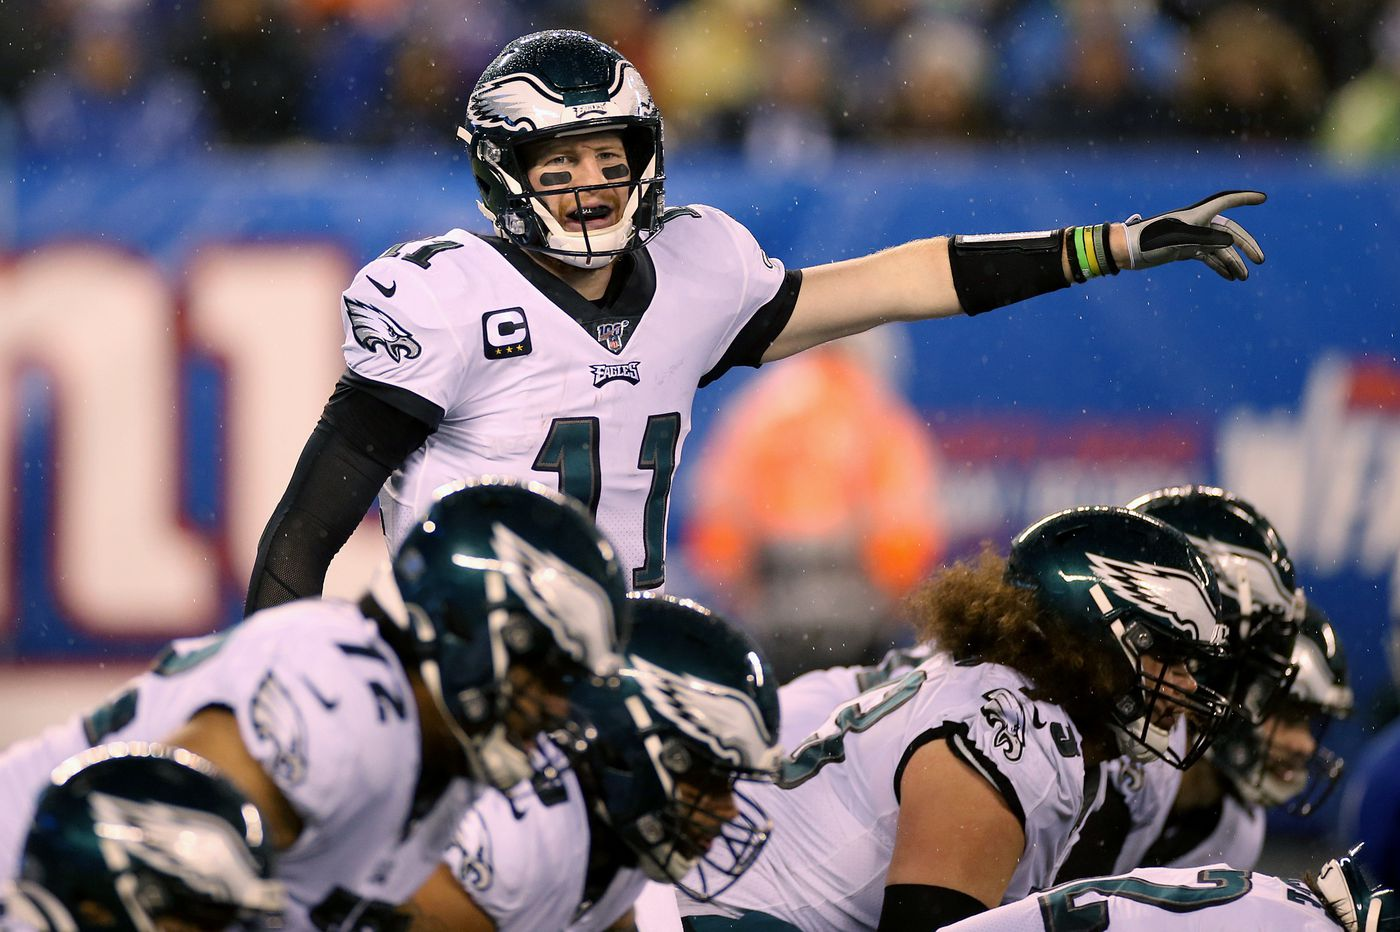 Happy Birthday Carson Wentz You Played Great All Year Not Just